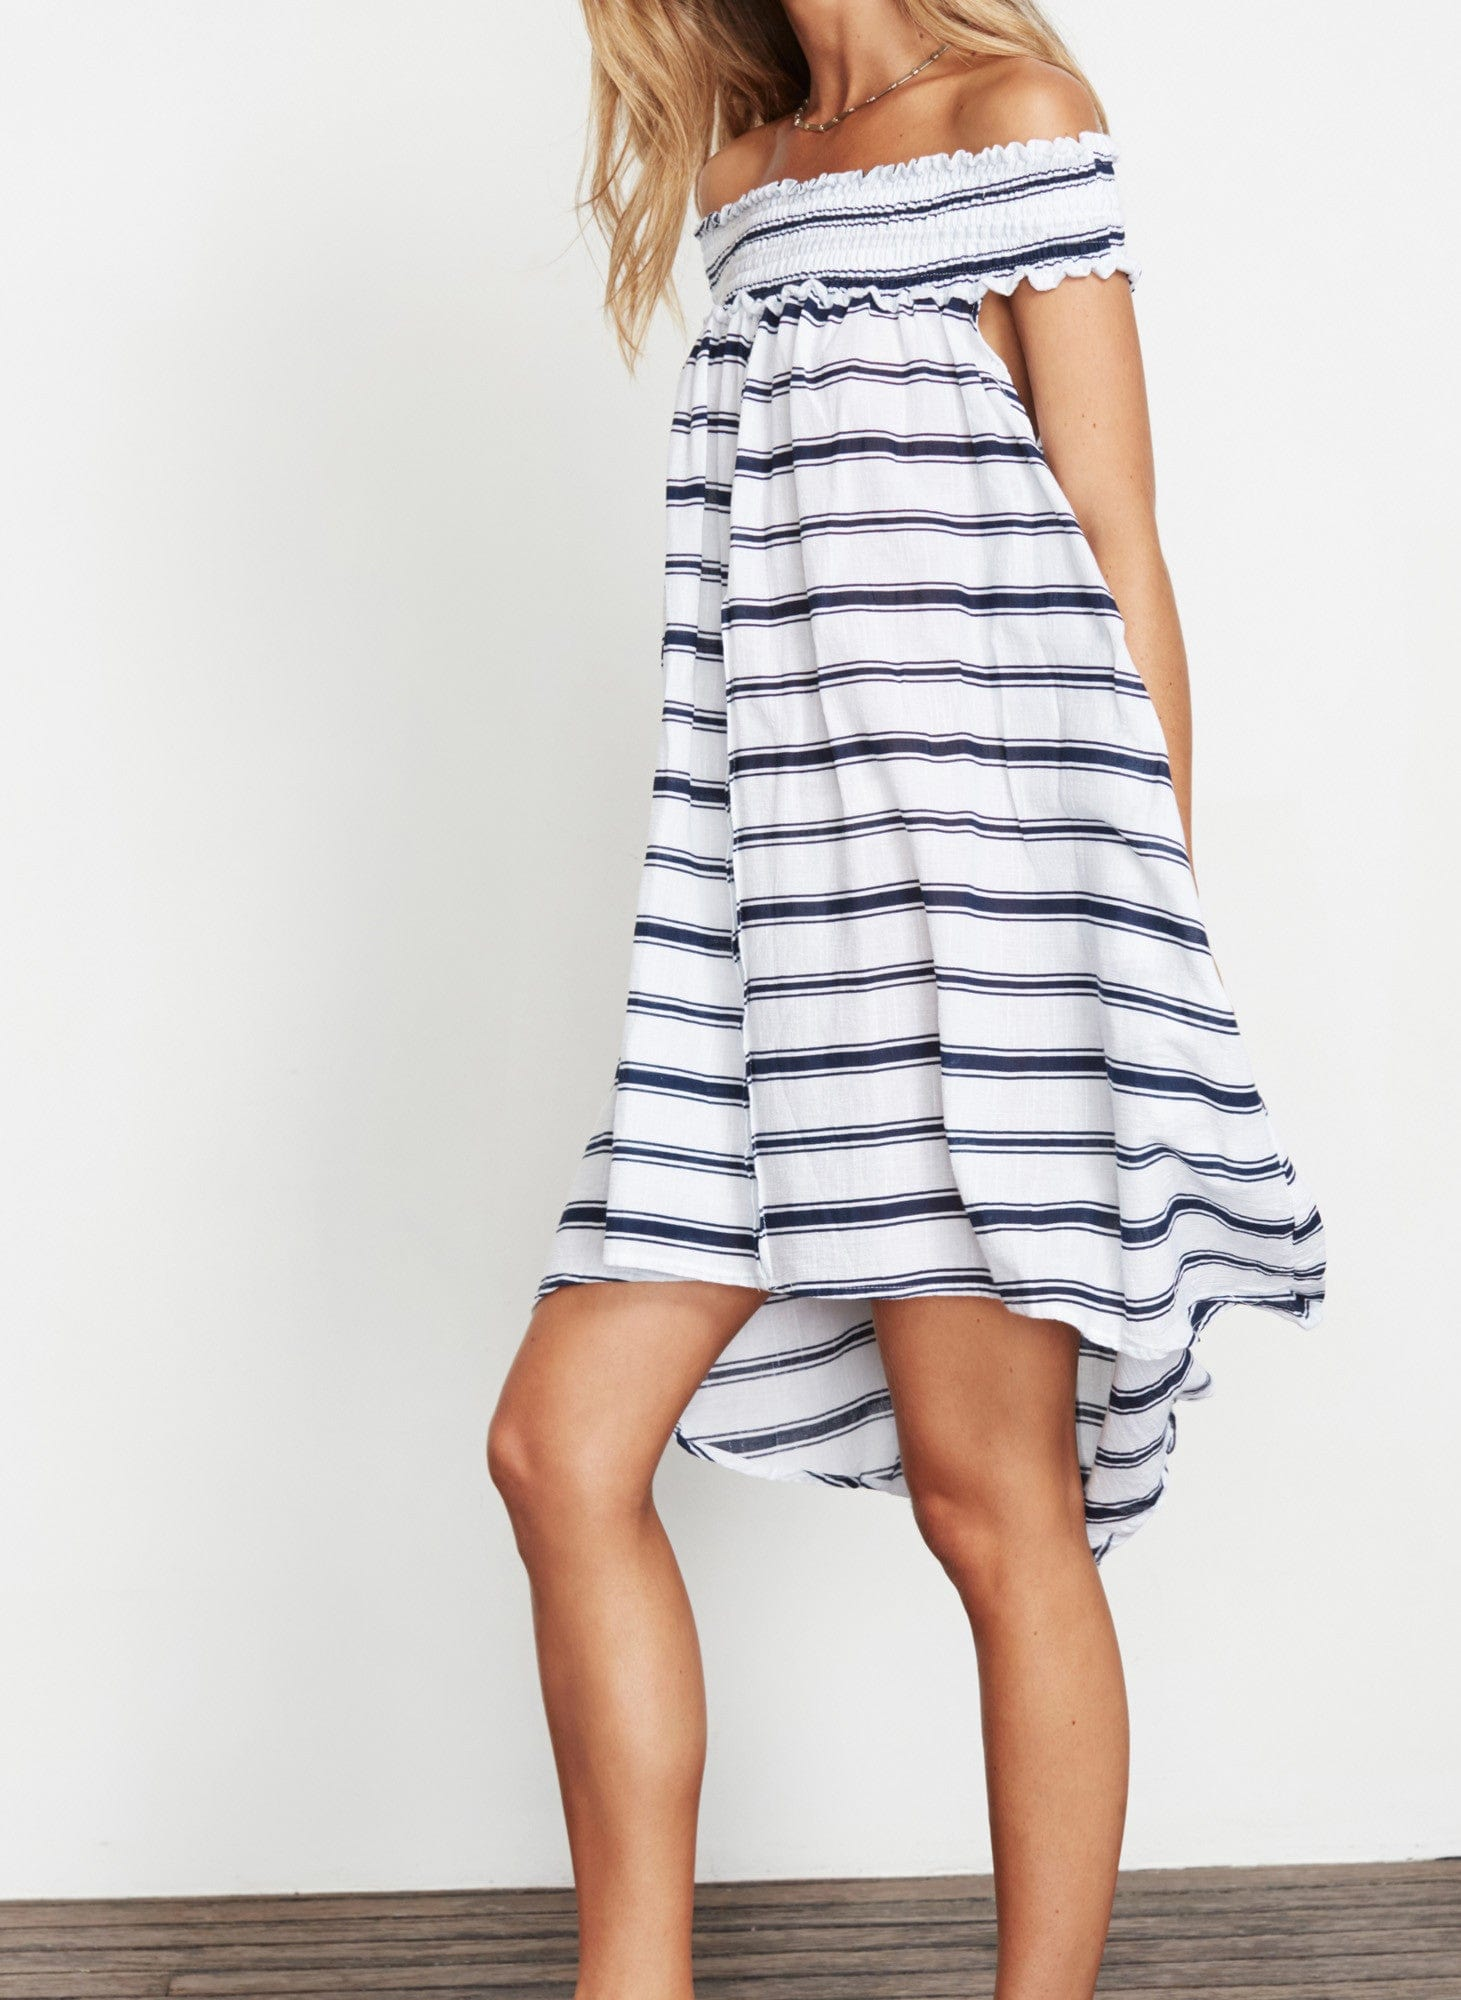 WAVES STRIPE DRESS - KAVA DRESS